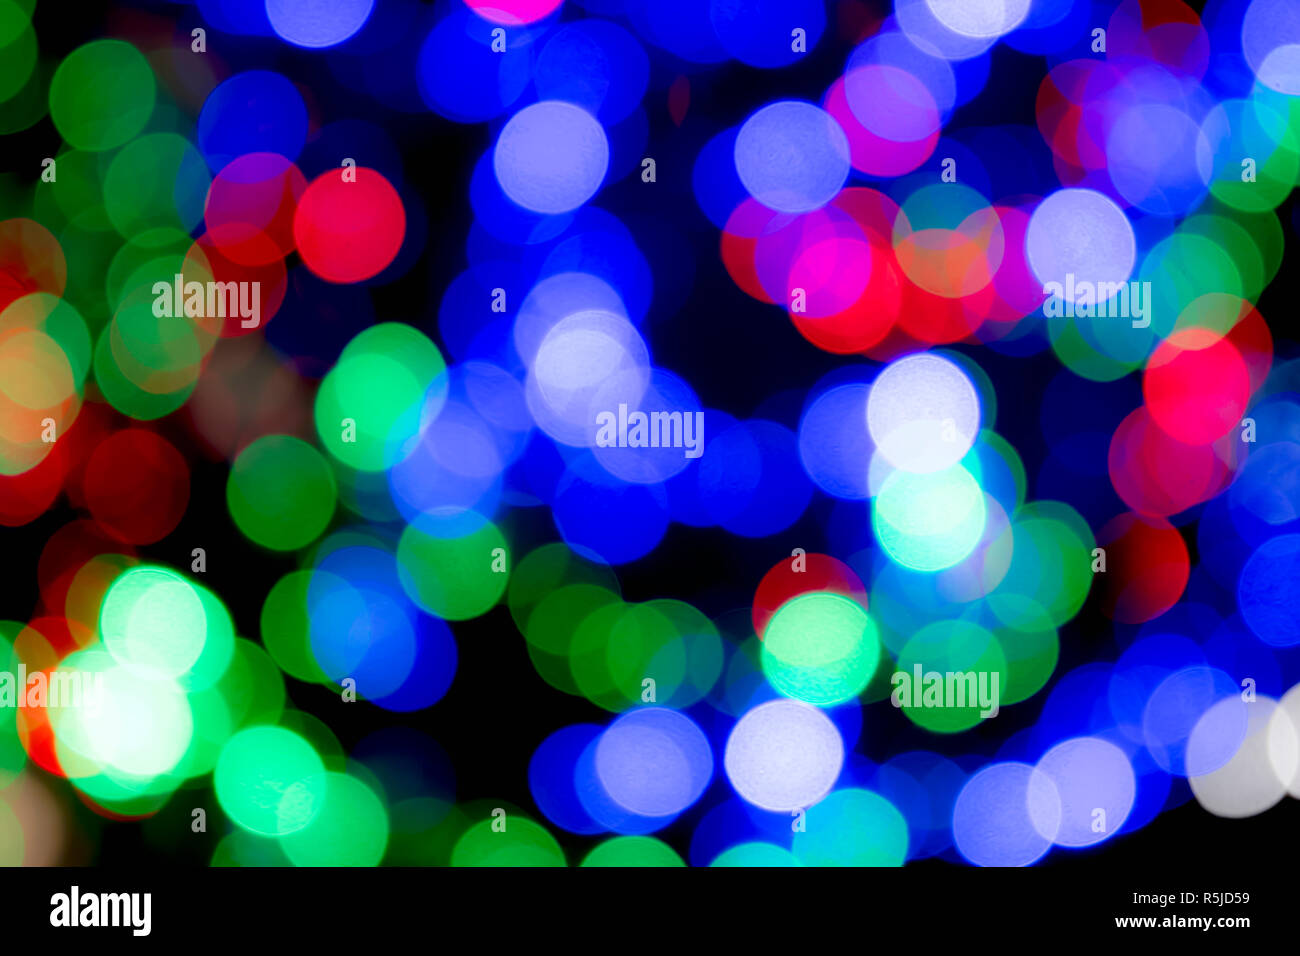 Christmas and festive multicoloured lights, blurred to give an abstract effect and colourful Christmas background. Stock Photo